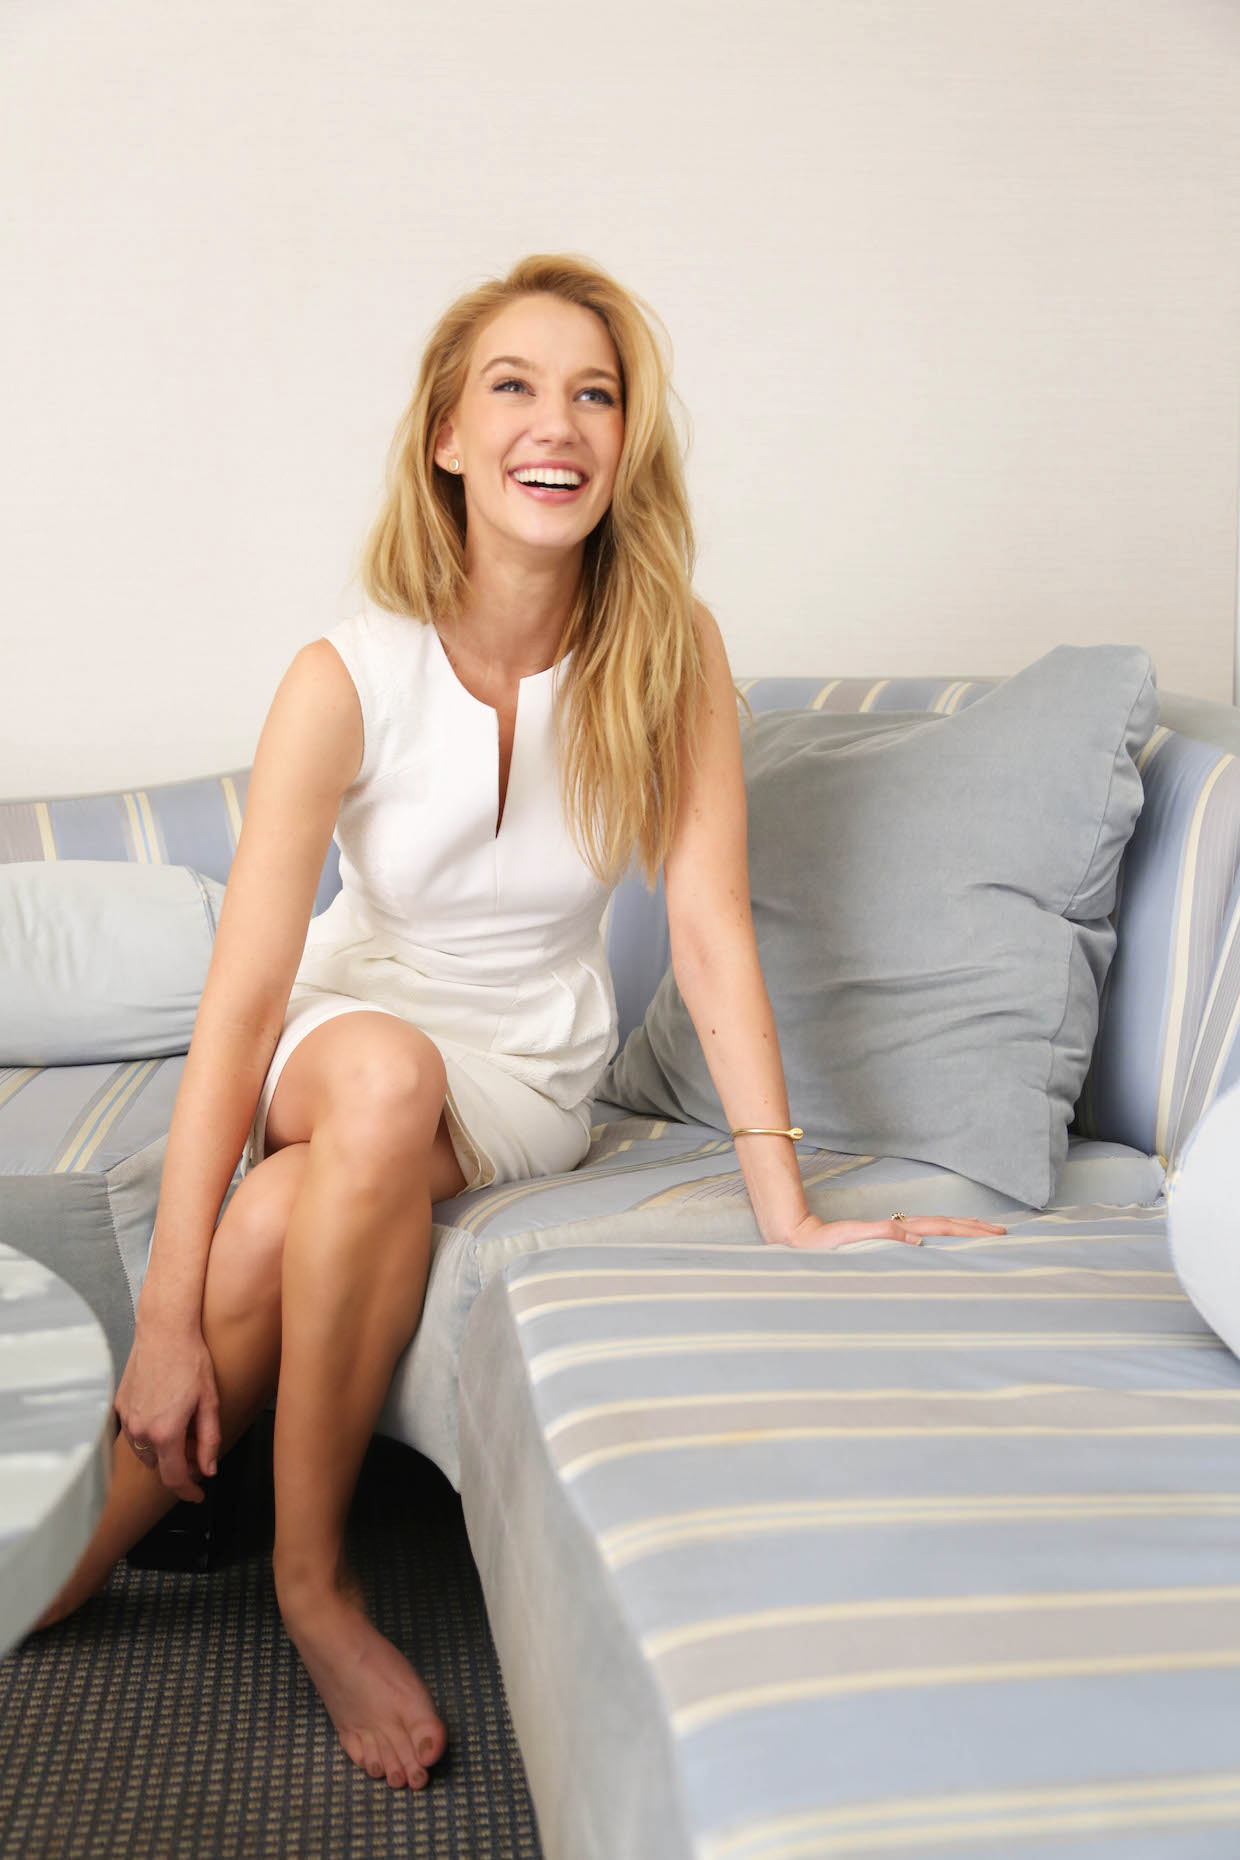 Images Yael Grobglas nudes (55 photos), Tits, Fappening, Boobs, swimsuit 2018